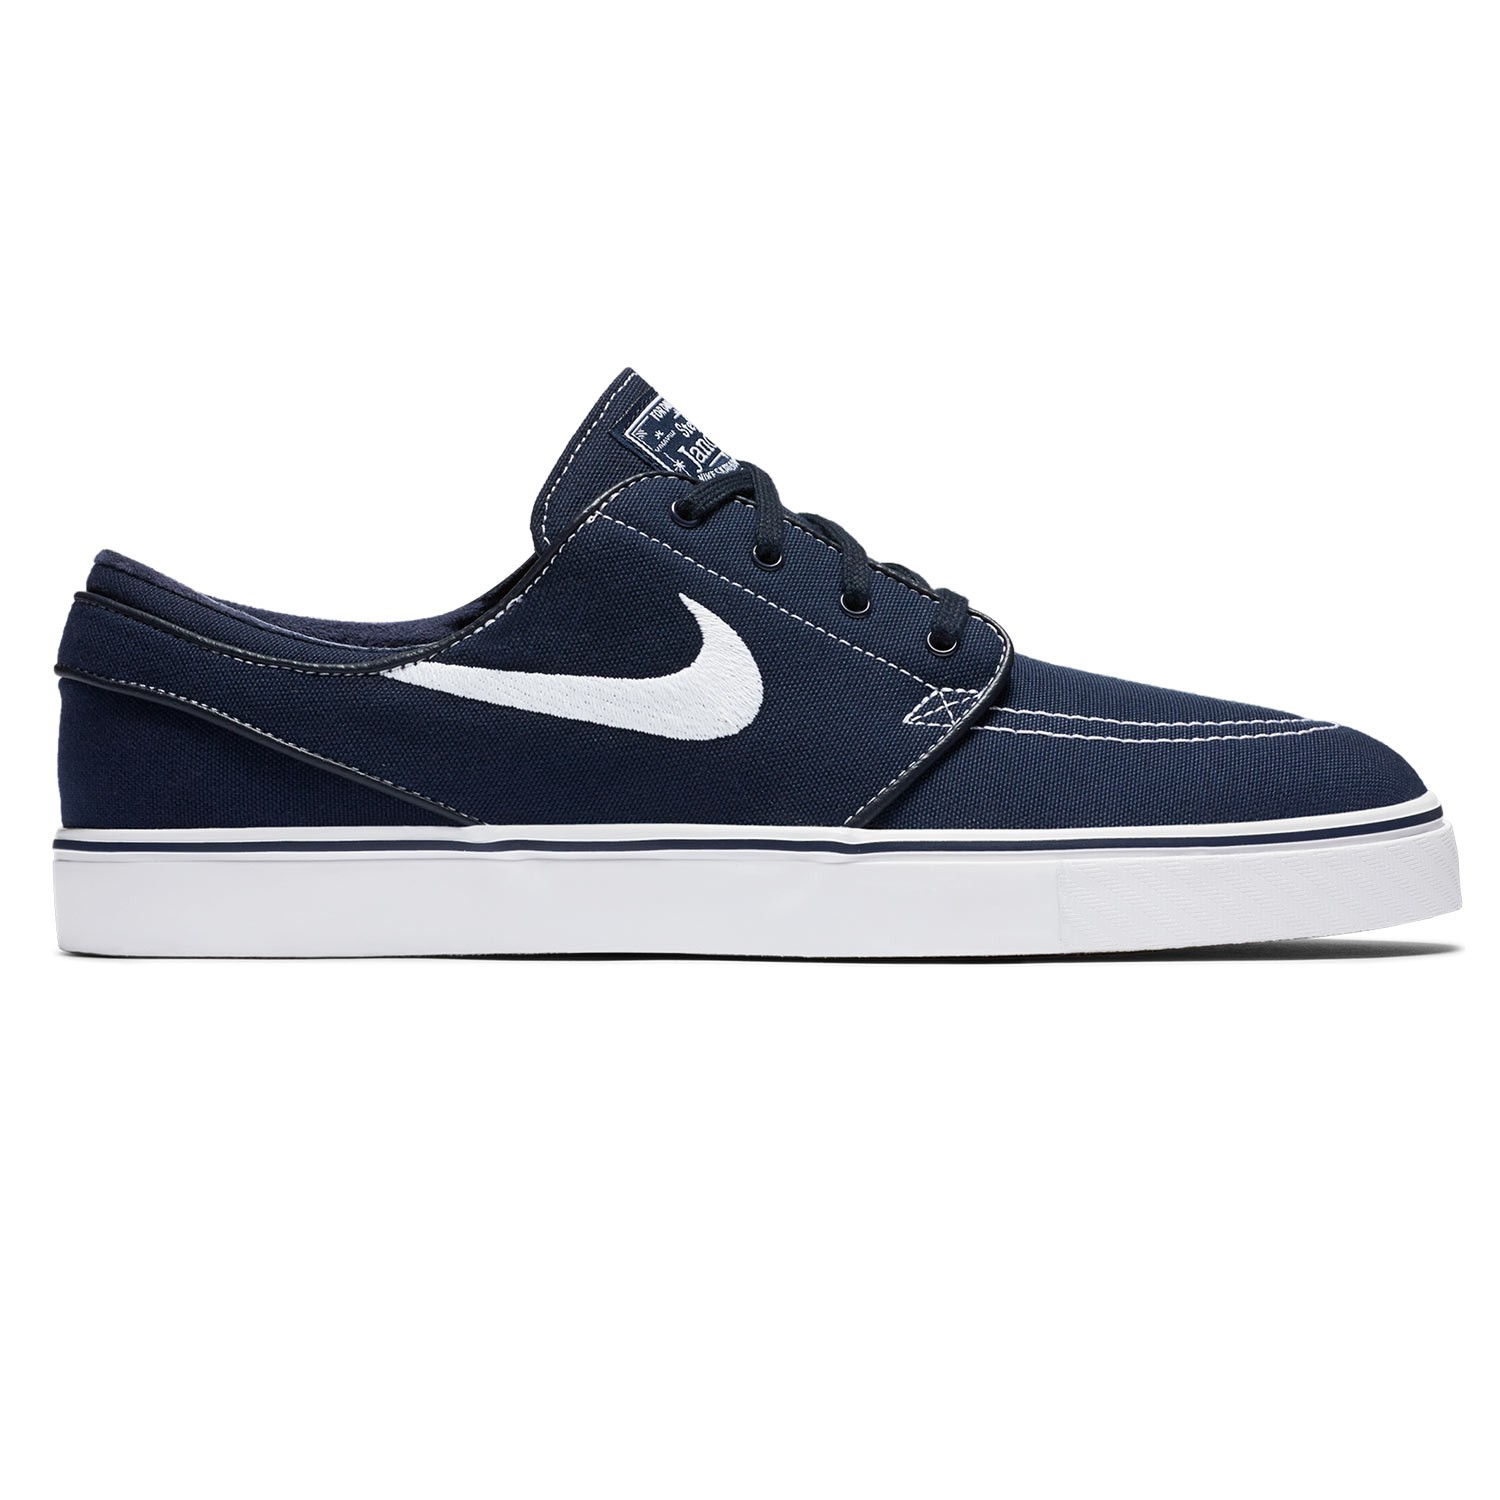 sneakers nike sb zoom stefan janoski canvas obsidian wht gum lght brwn snowboard zezula. Black Bedroom Furniture Sets. Home Design Ideas